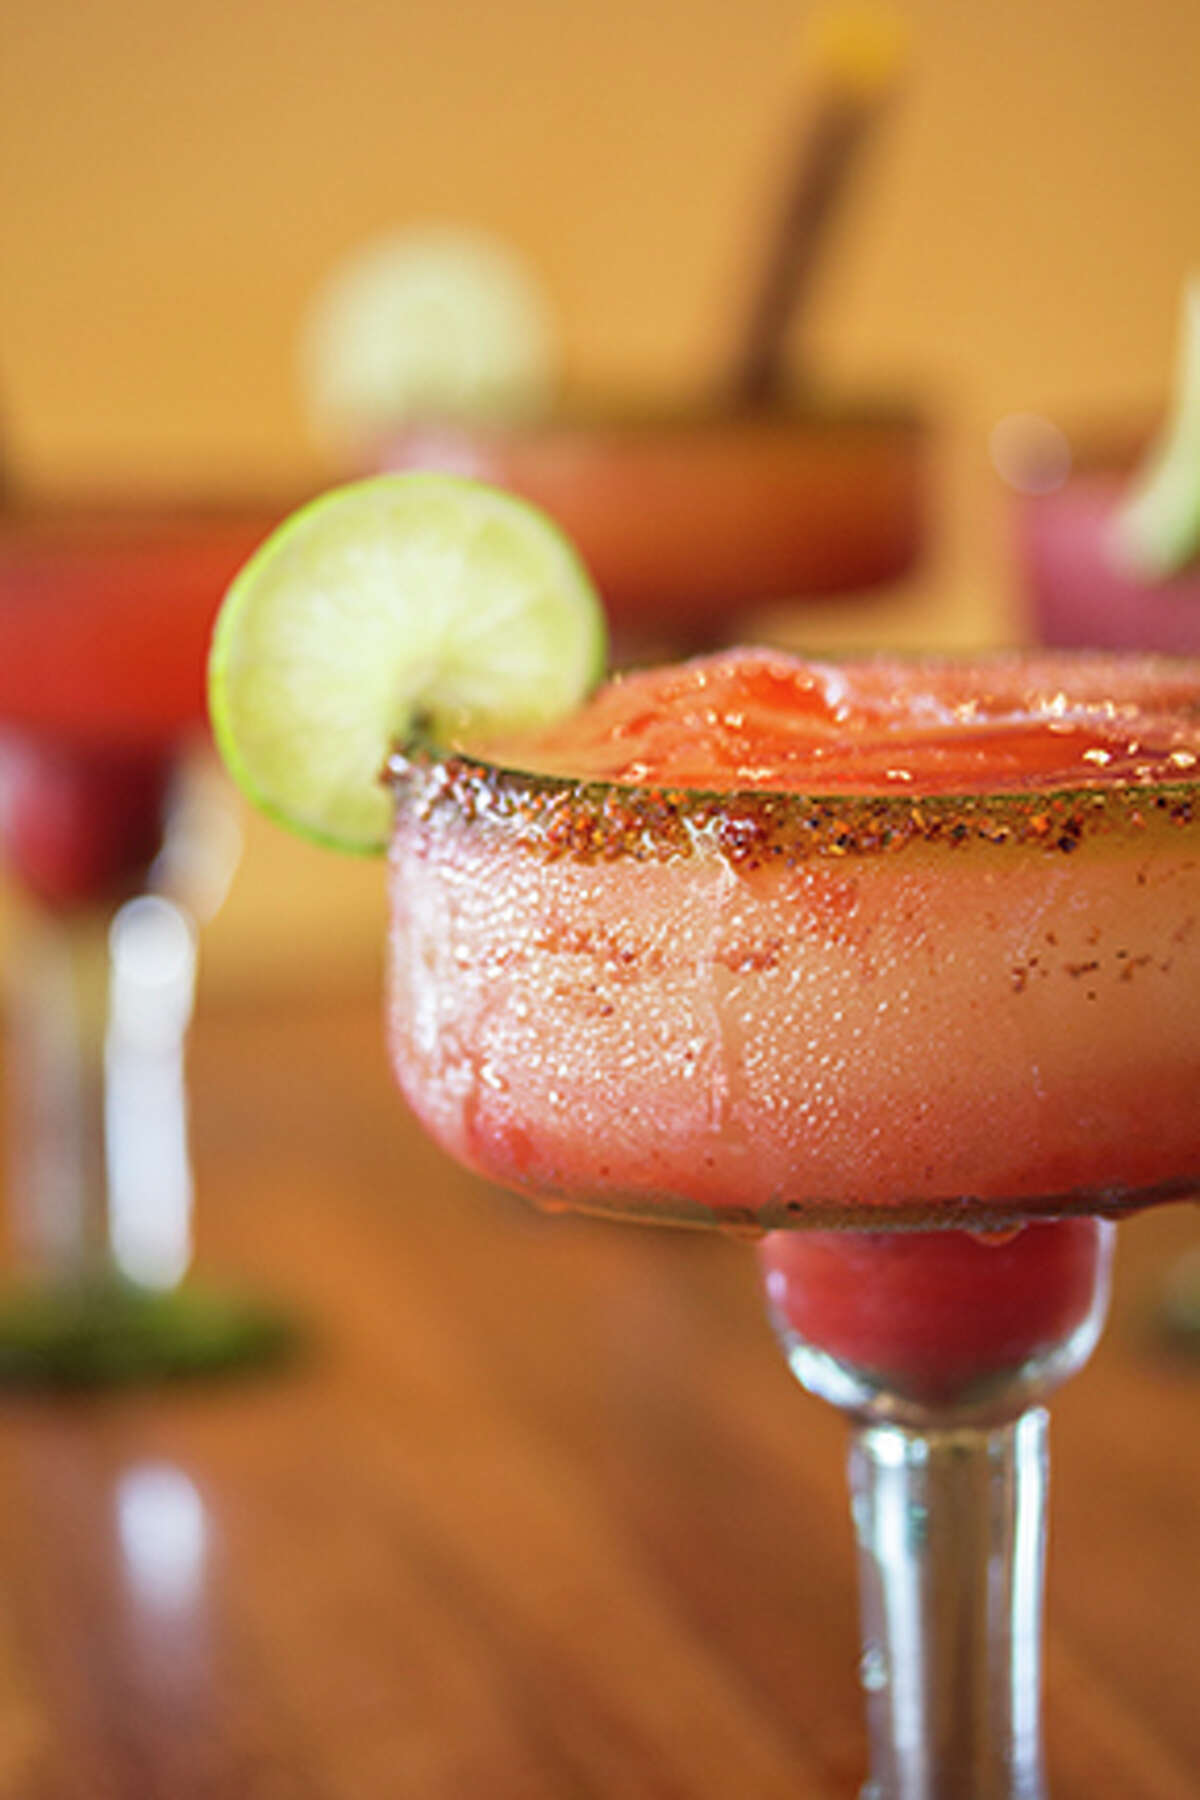 The Chamoy Rita is a recent addition to Tiago's Cabo Grille's flavor-infused margarita menu. The margarita features a line of chamoy in the center with a chewy candy straw on the side.